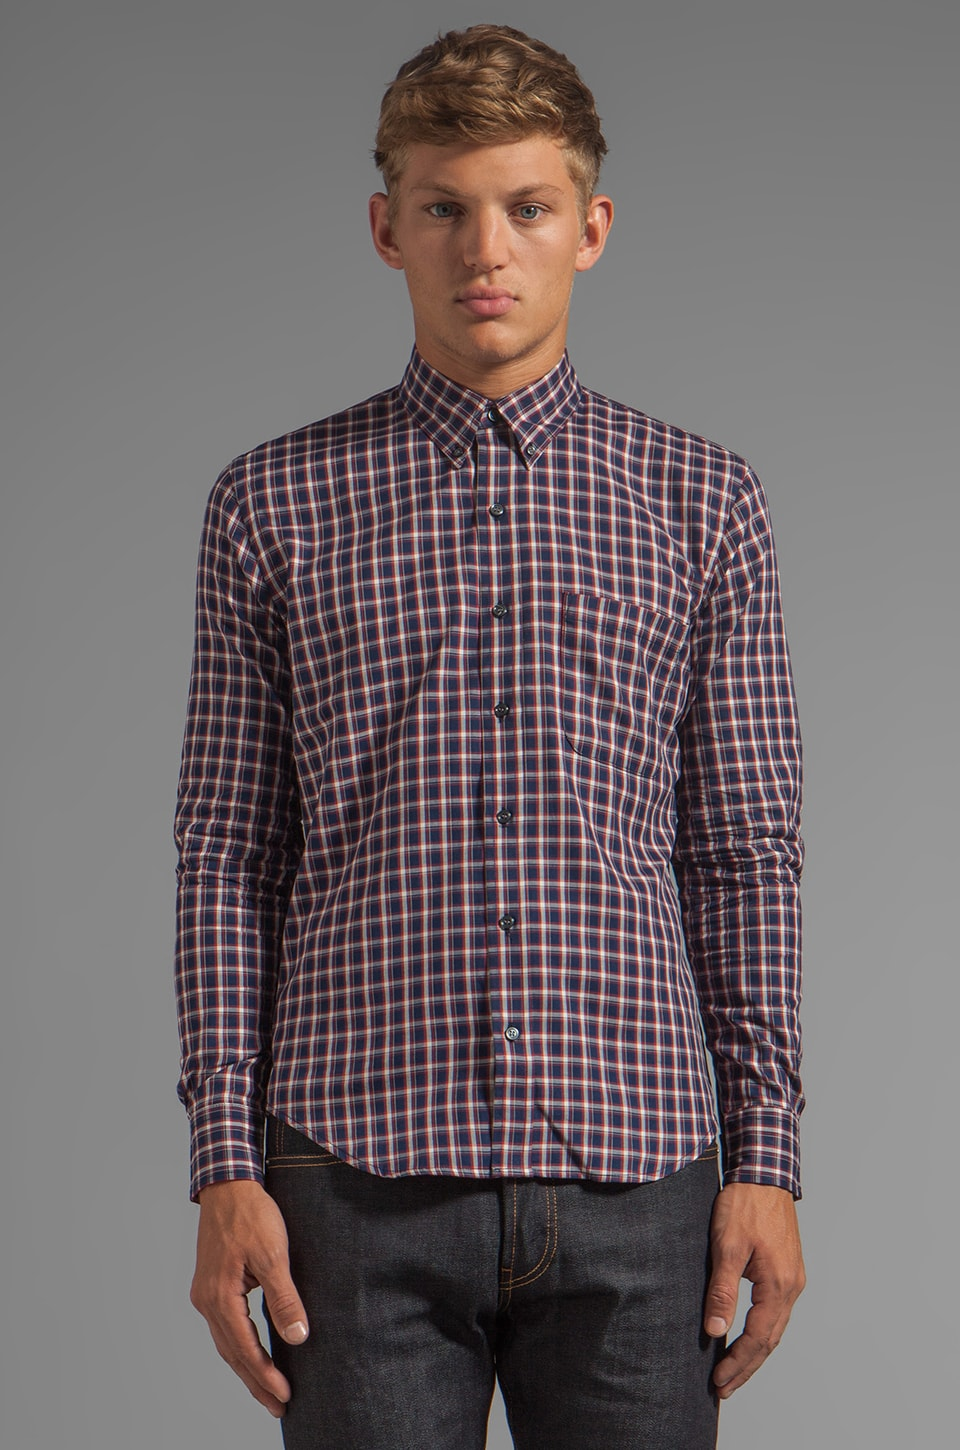 United Stock Dry Goods Plaid Shirt in Navy/Red